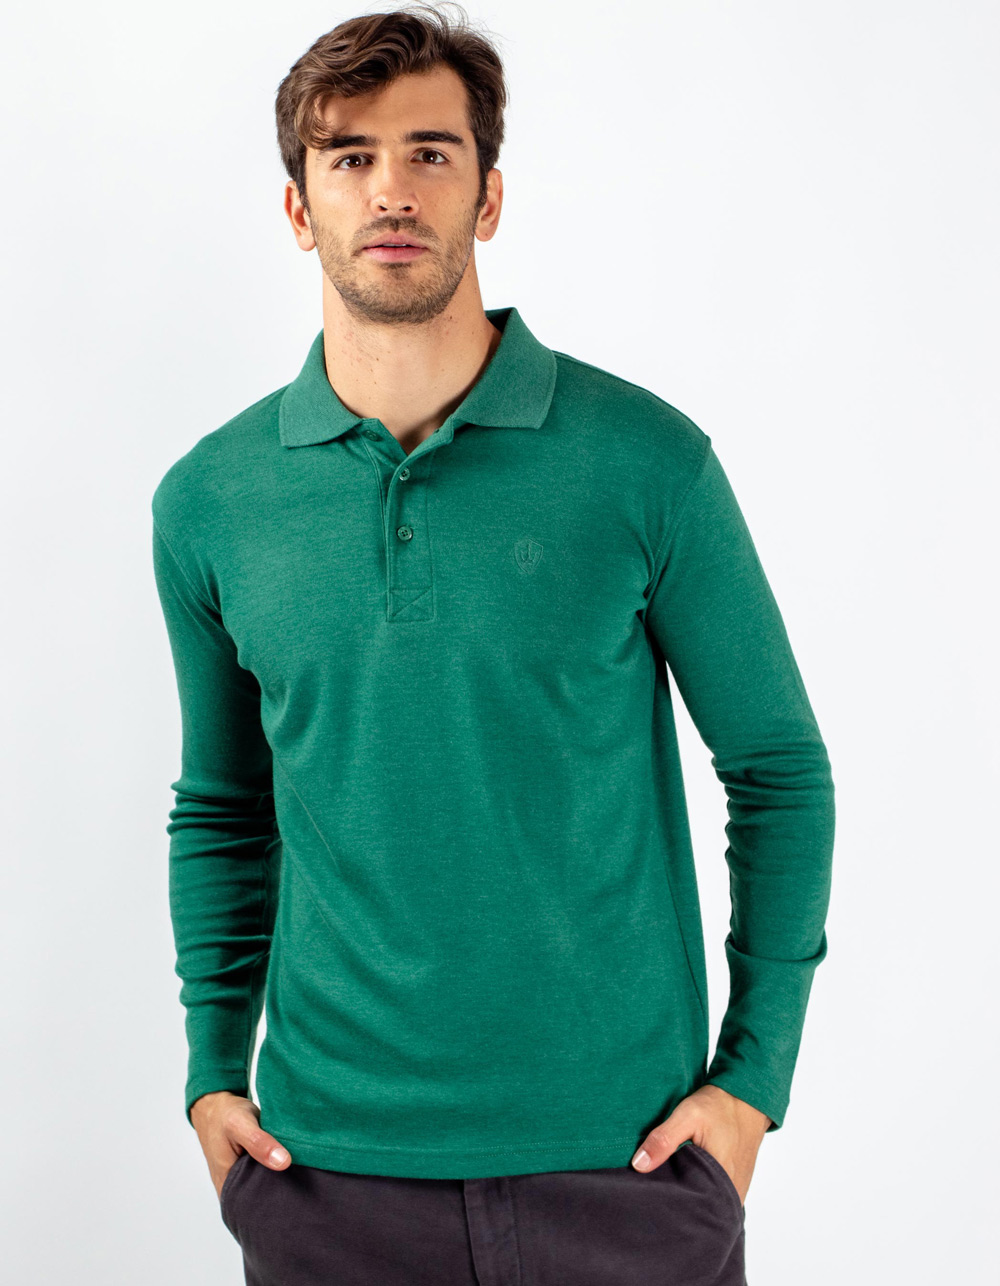 Green washed polo shirt